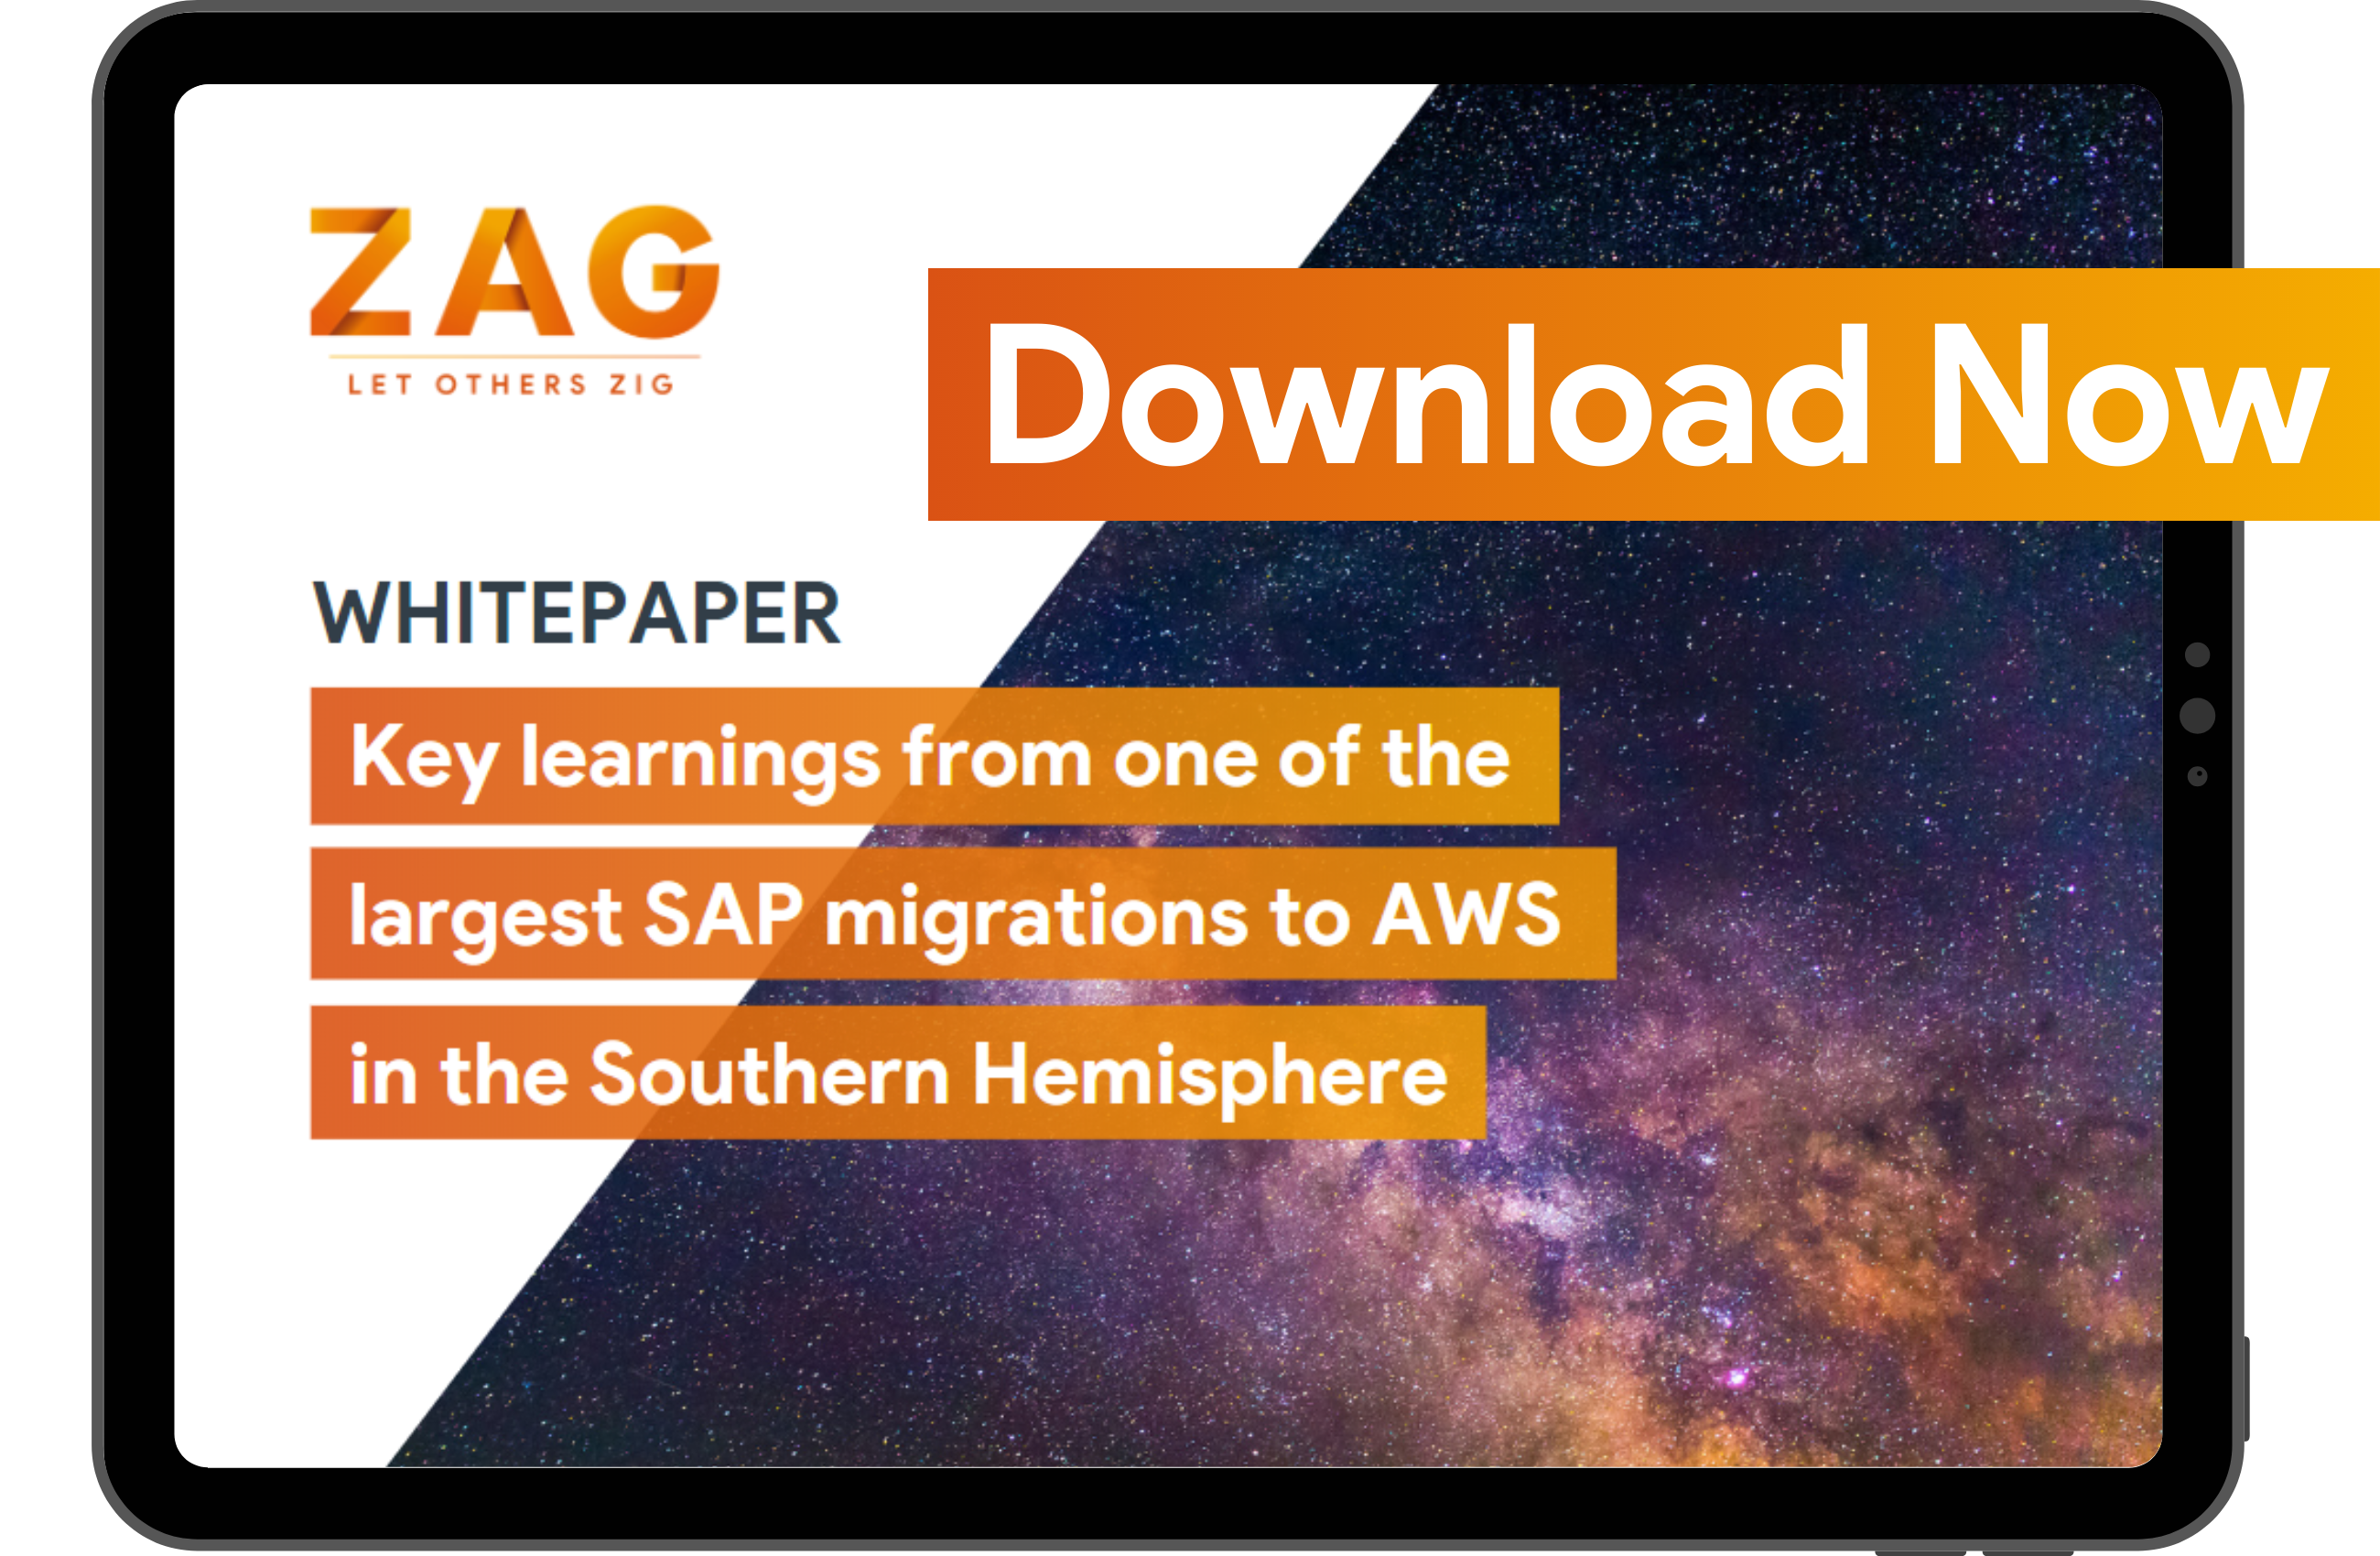 Download our whitepaper: Key learnings from one of the largest SAP migrations to AWS in the Southern Hemisphere